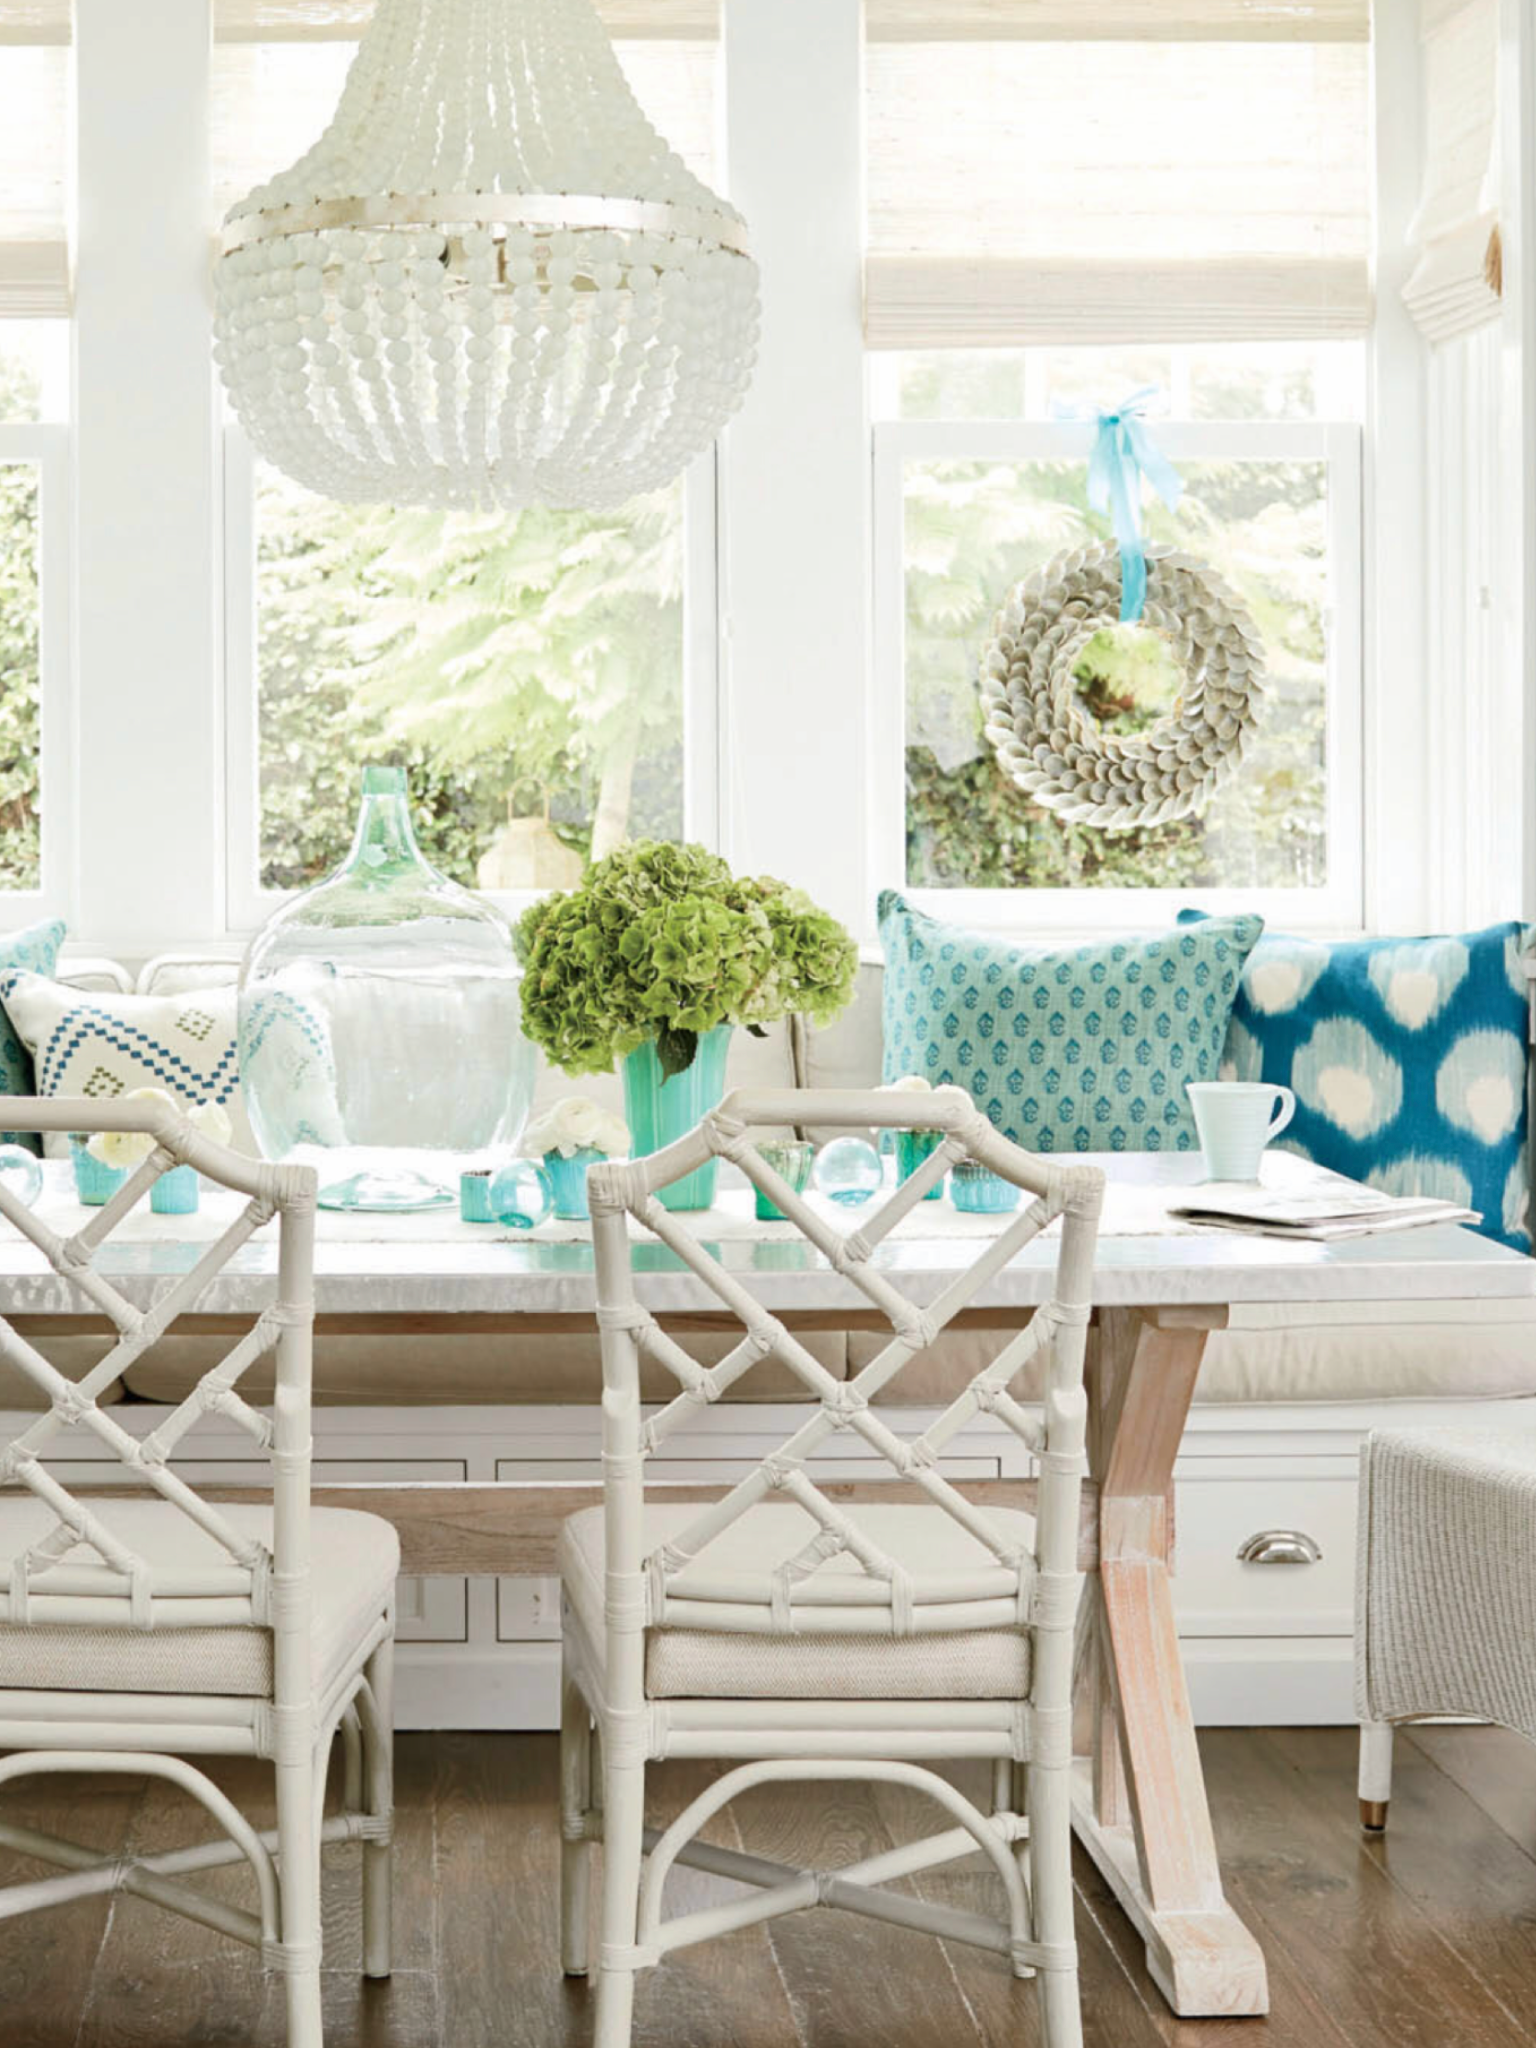 dining nook, wooden floor, white wall, white bench with drawers, blue pillows, white wooden table, white wooden chairs, chandelier, white chair